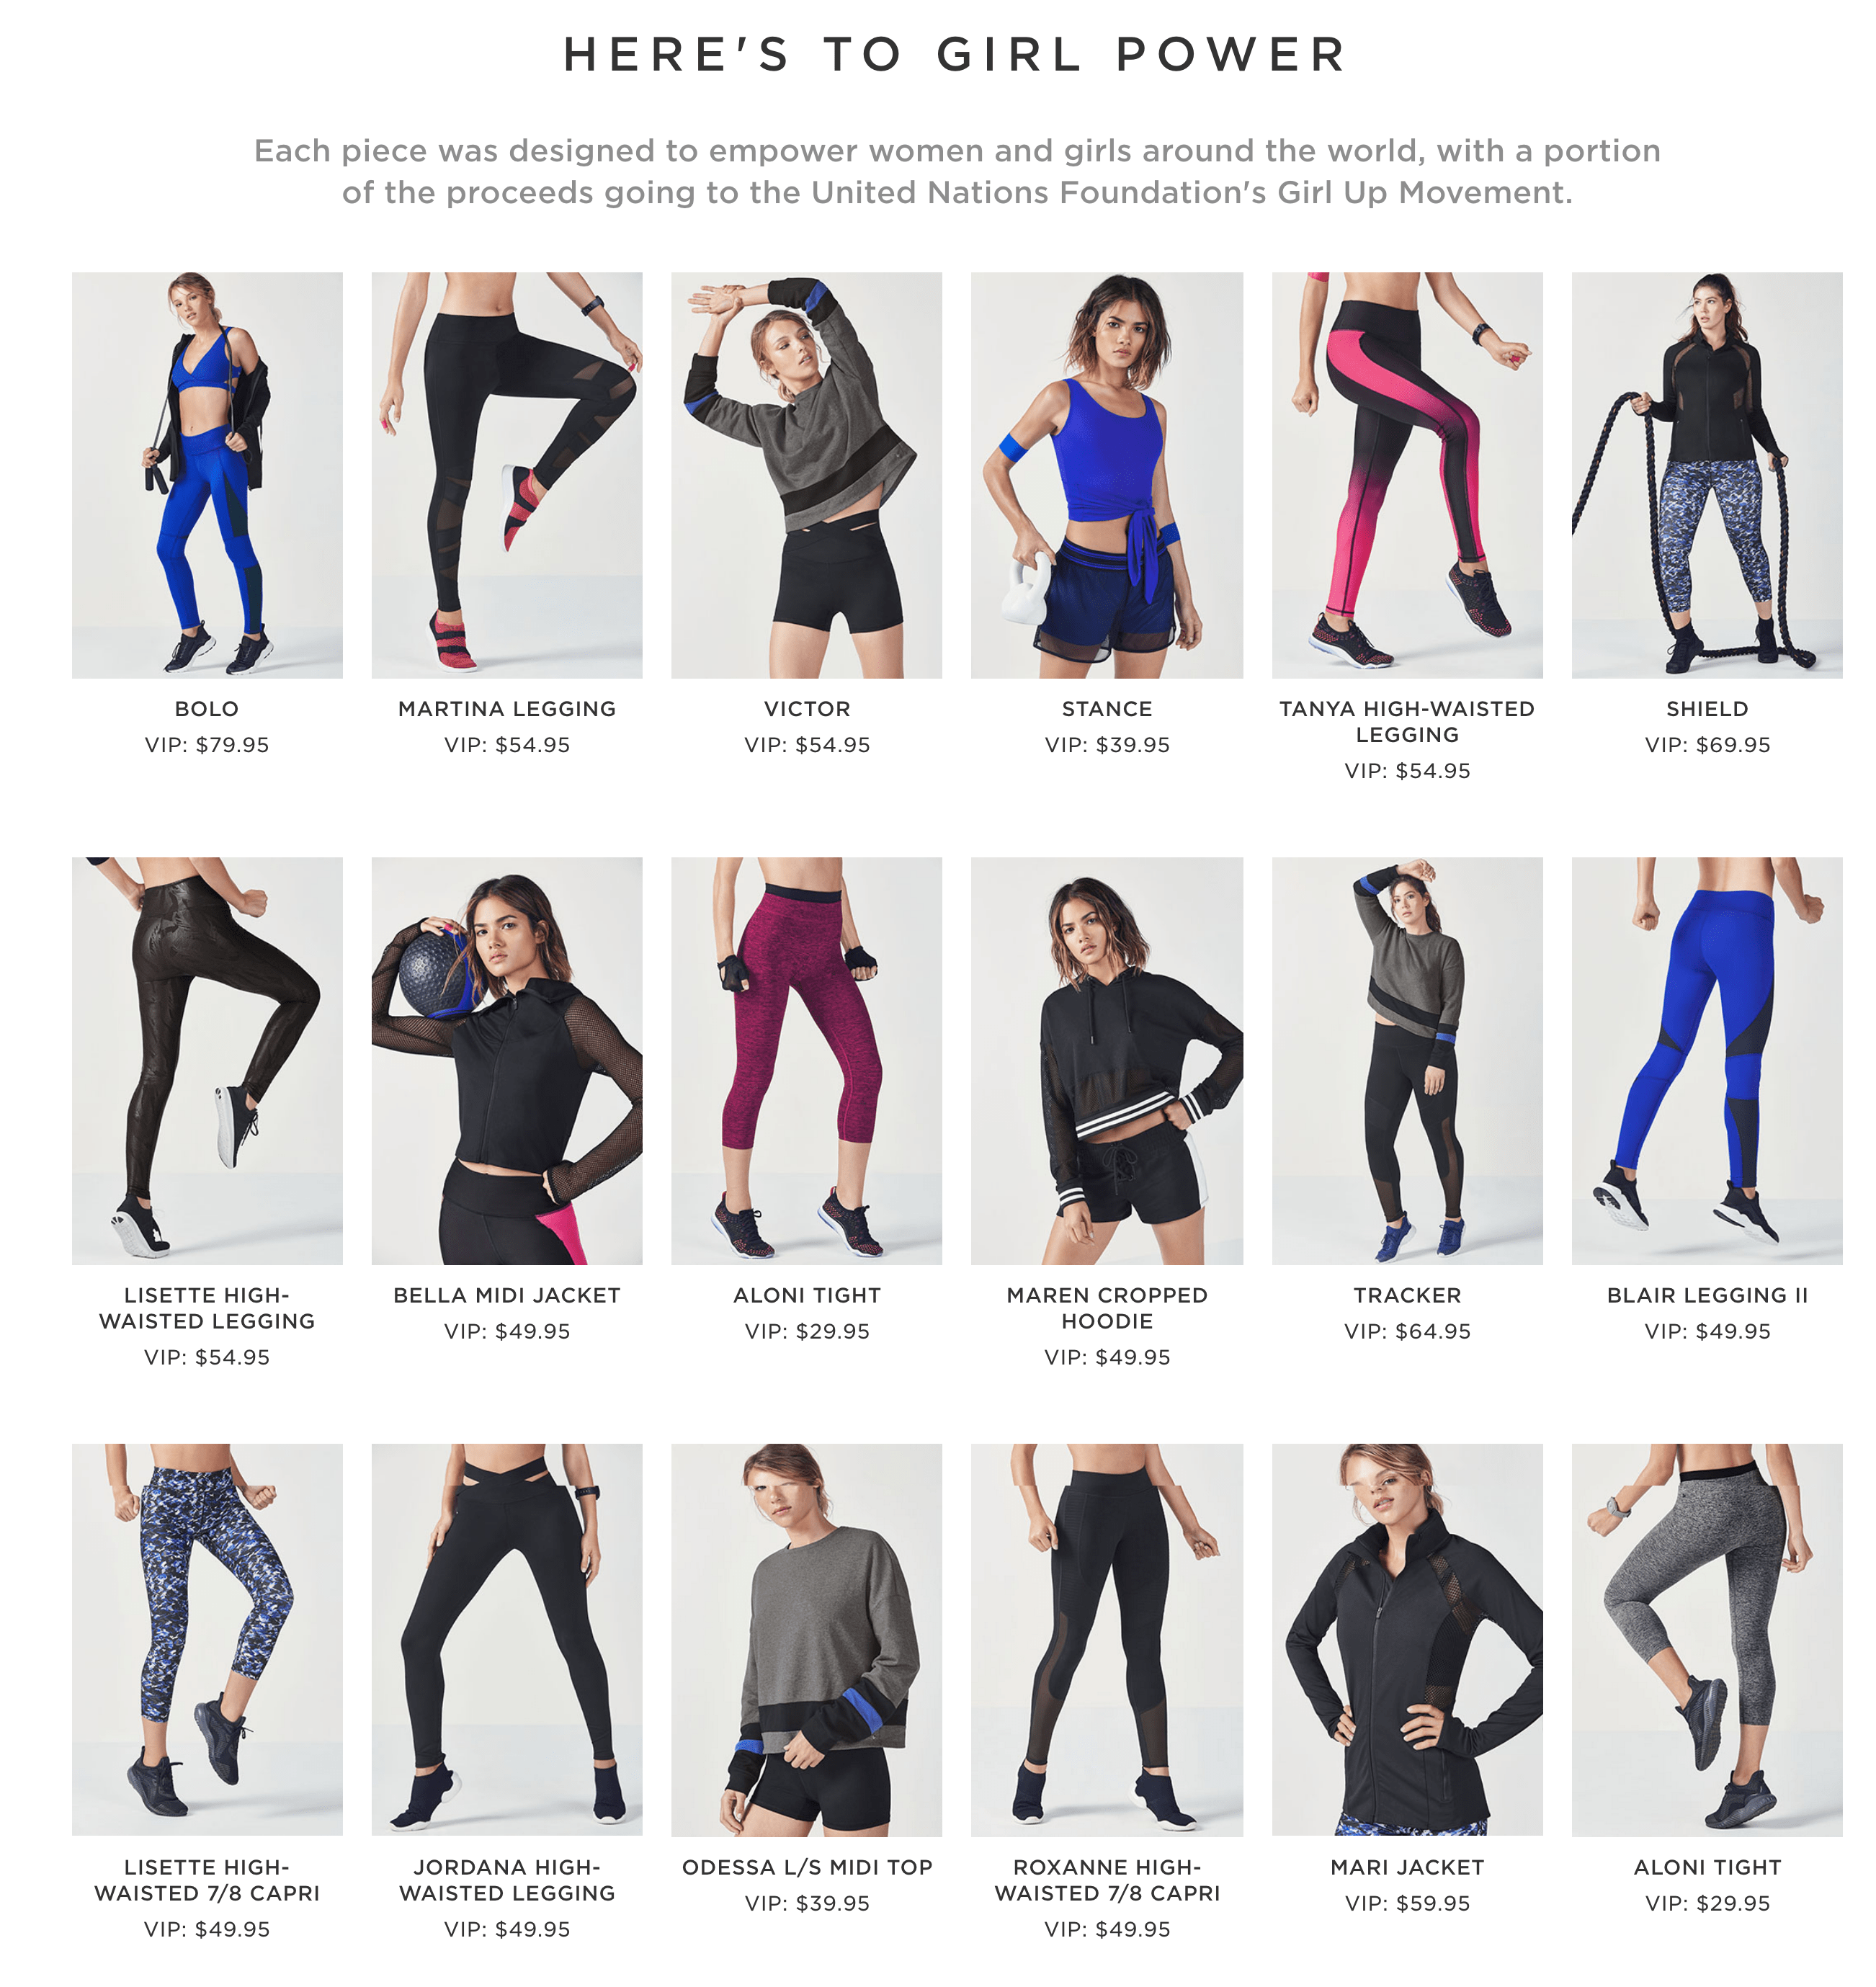 cc2ea5d4f2bd53 DEAL: For a limited time new members get 2 pairs of leggings for $24 –no  code necessary, just use this link!